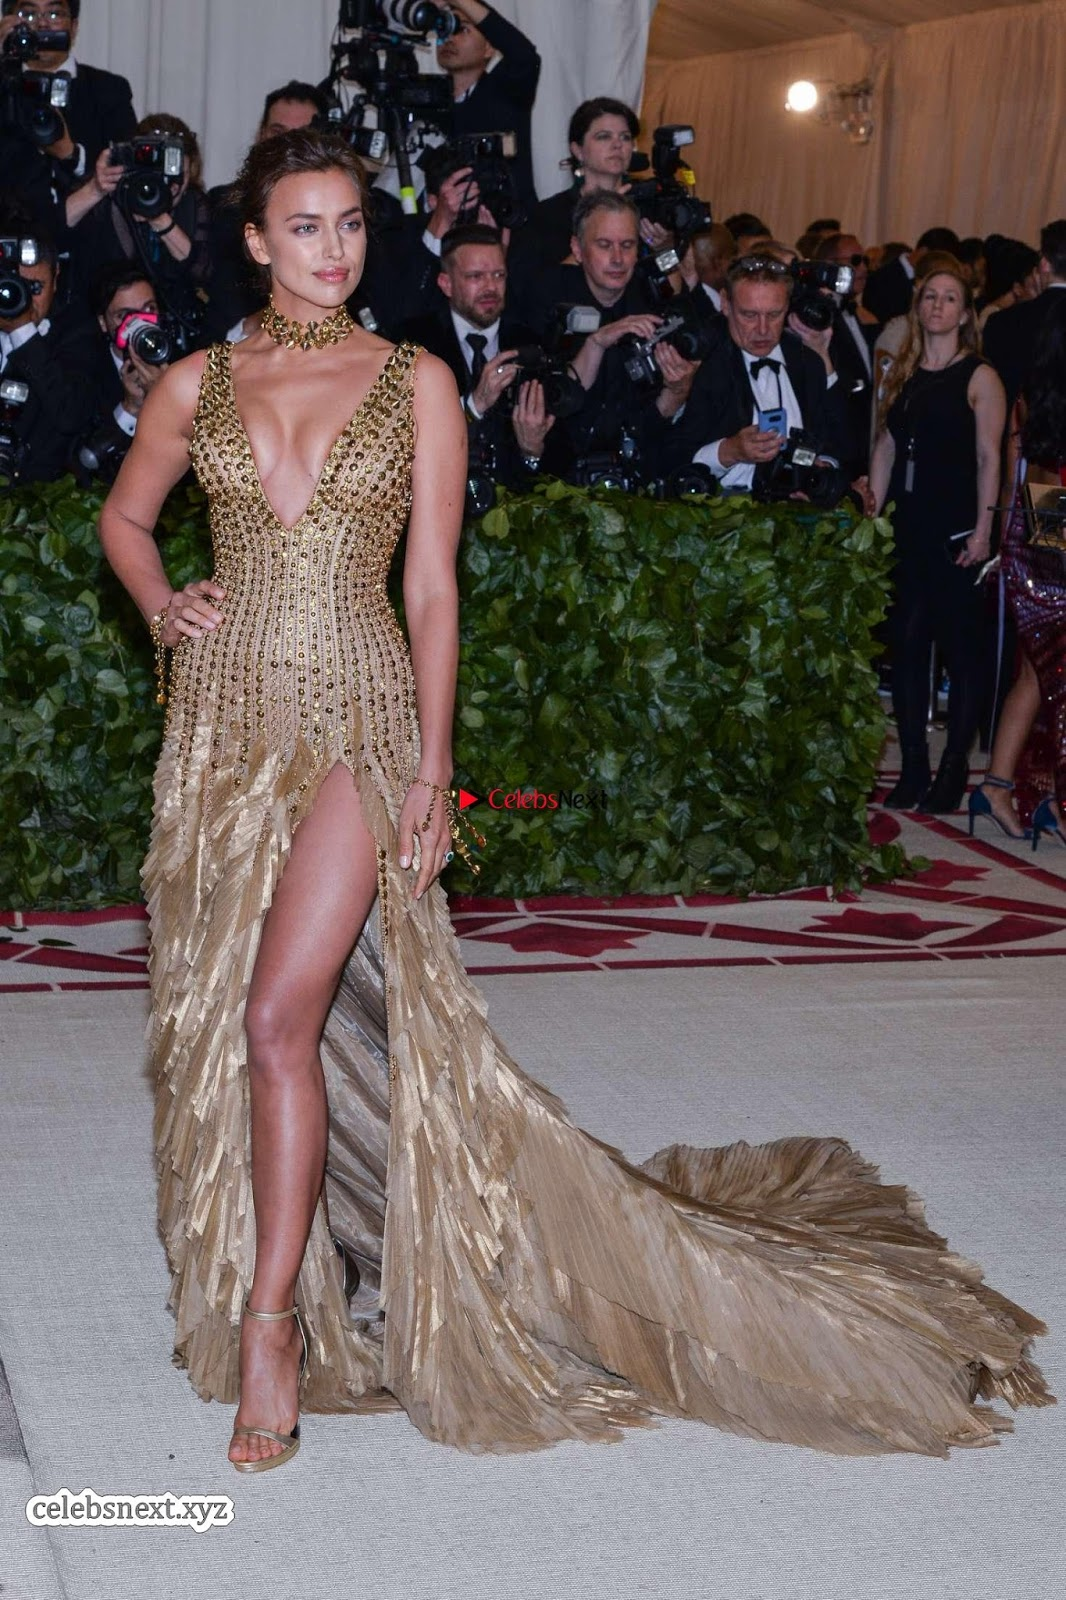 Deepika Padukone looks stunning with Irina Shayk at 2018 MET Costume Institute Gala ~ CelebsNext Exclusive